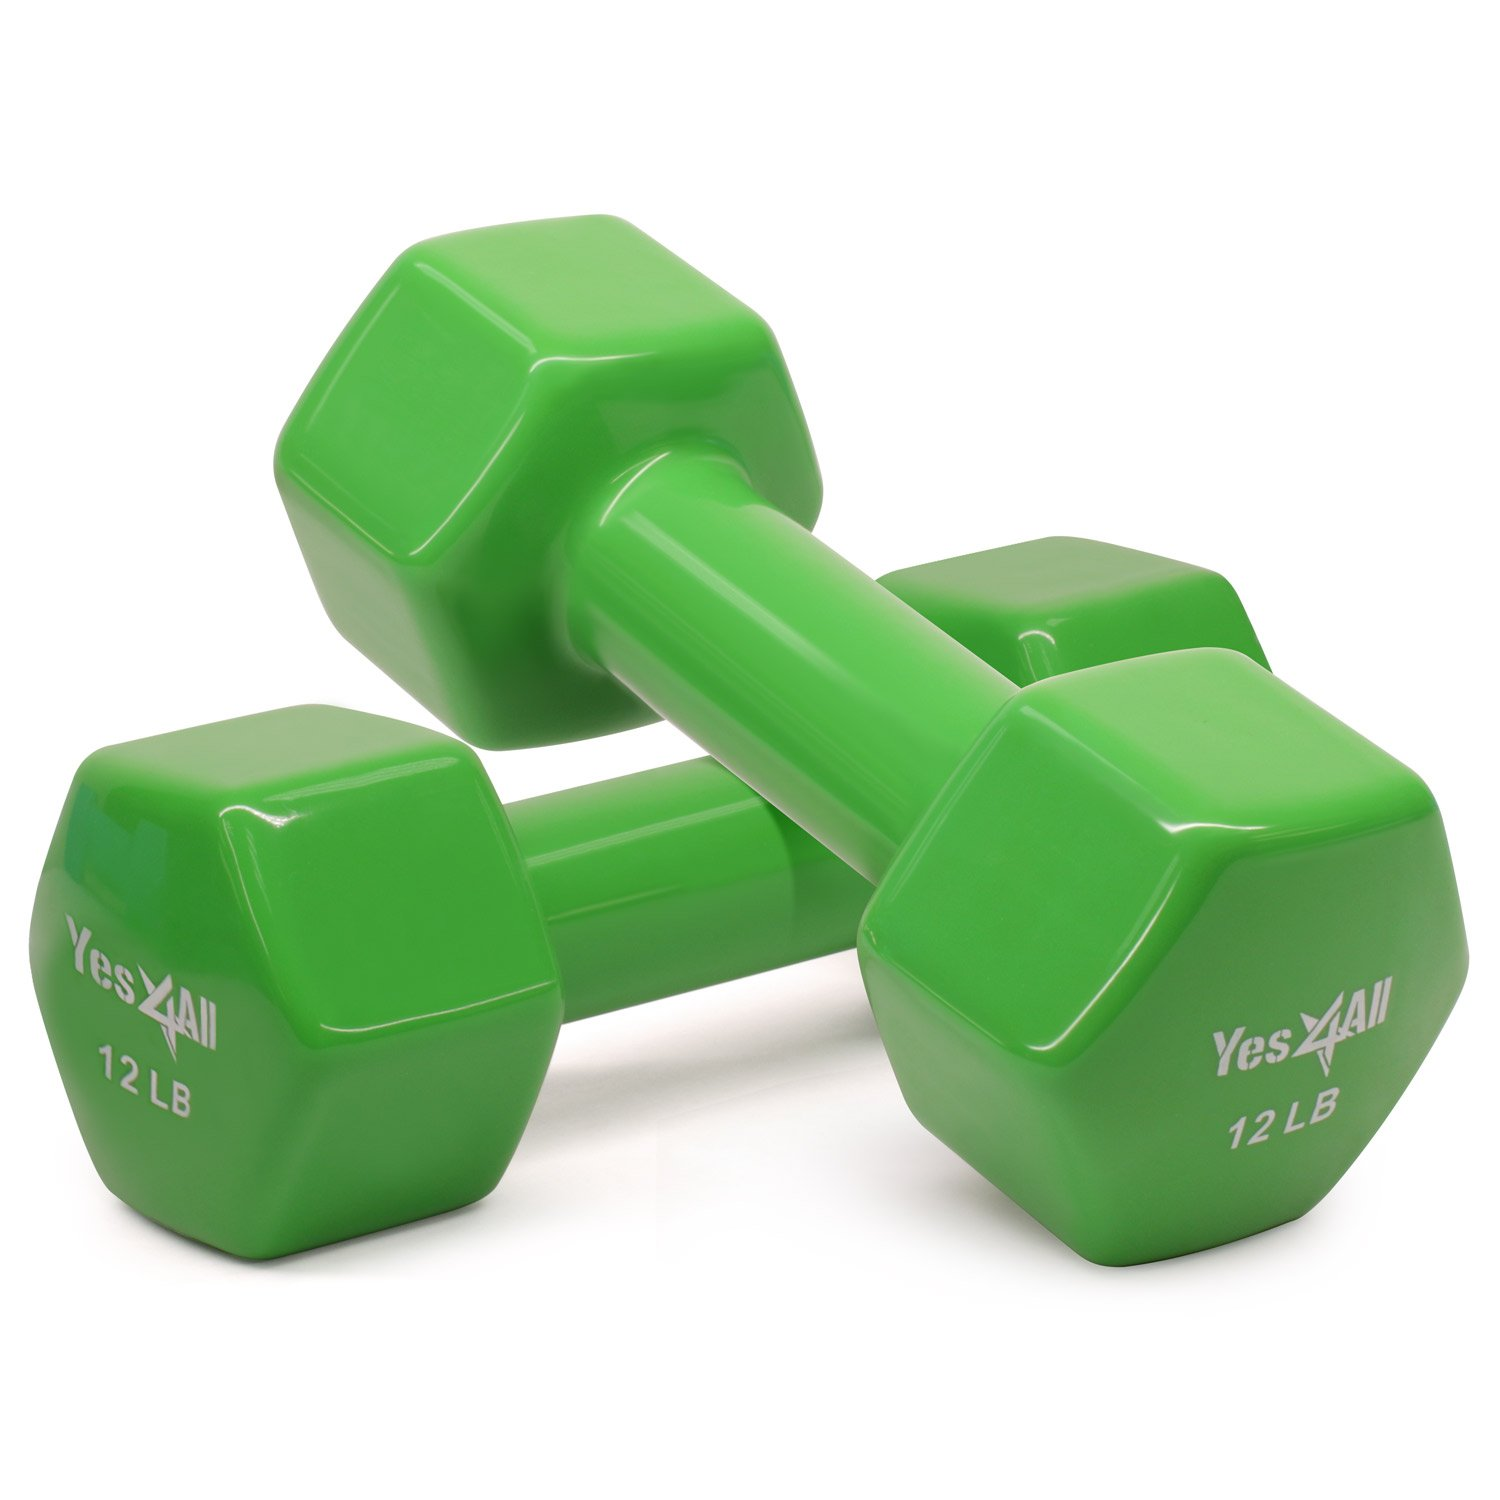 Yes4All Vinyl Coated Dumbbells - PVC Hand Weights for Total Body Workout (Set of 2, Emeral Green, 12 lbs)